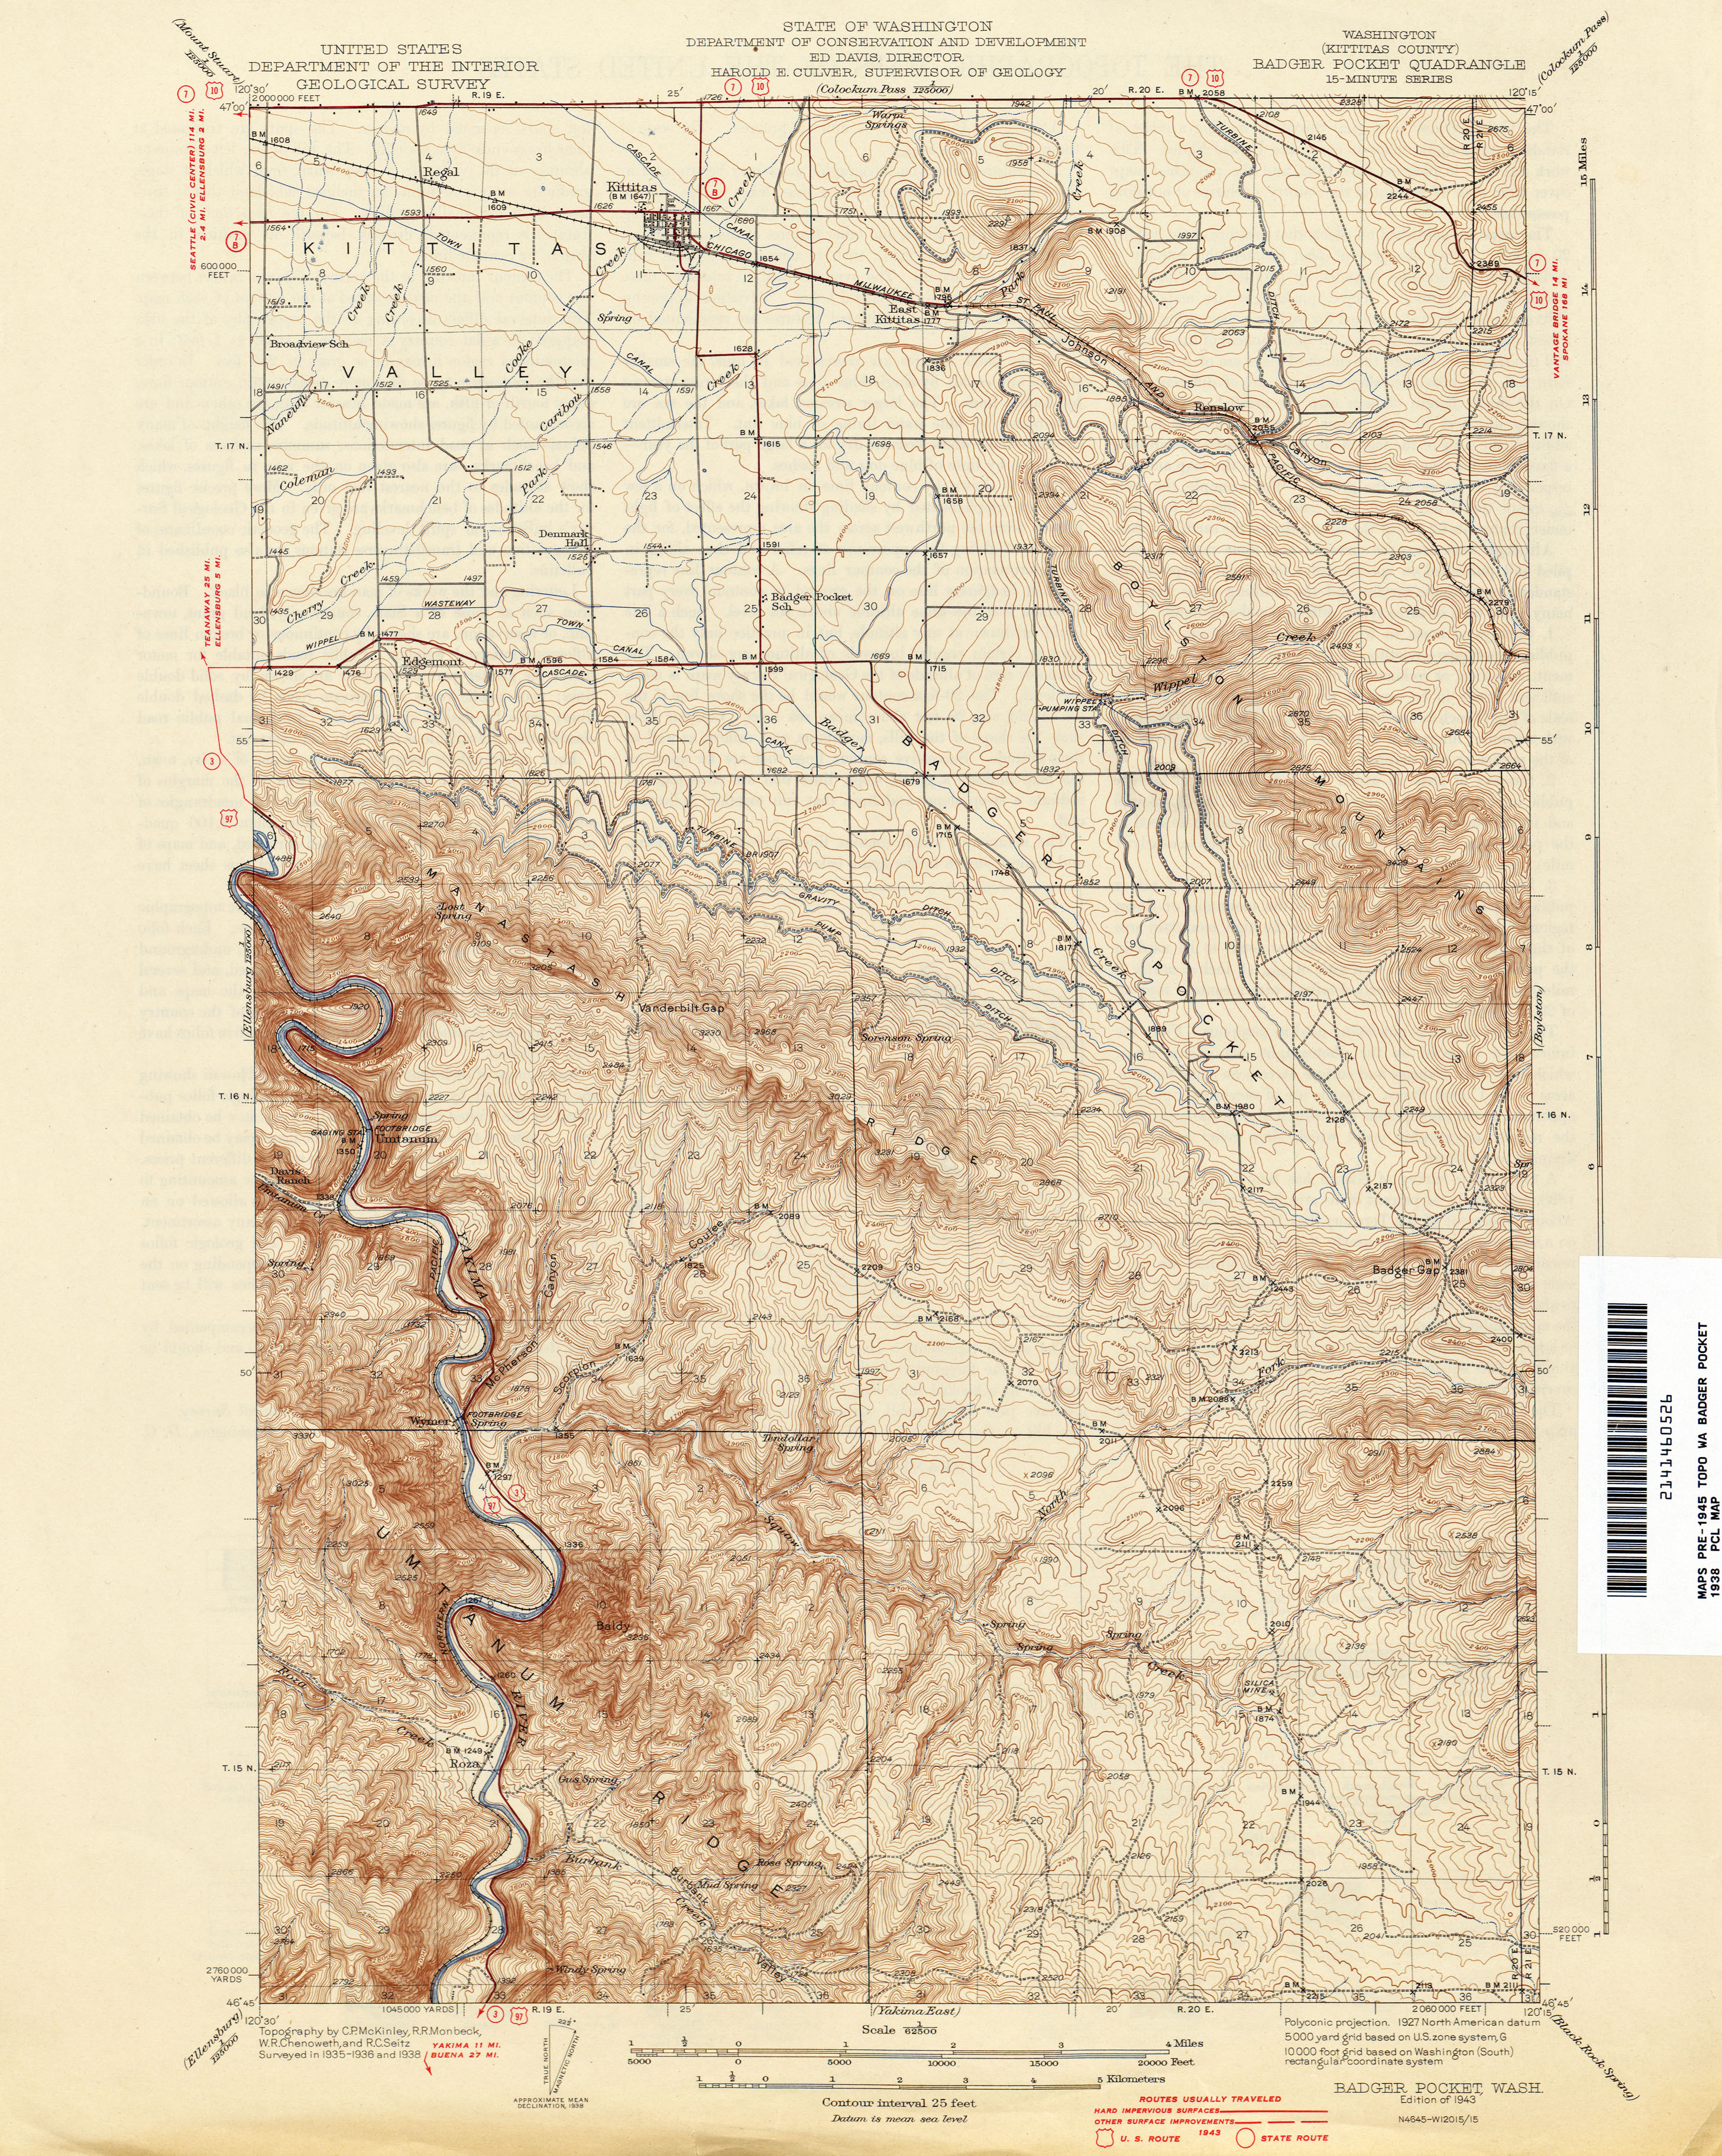 Washington Historical Topographic Maps Perry Castaneda Map - Us-geodetic-maps